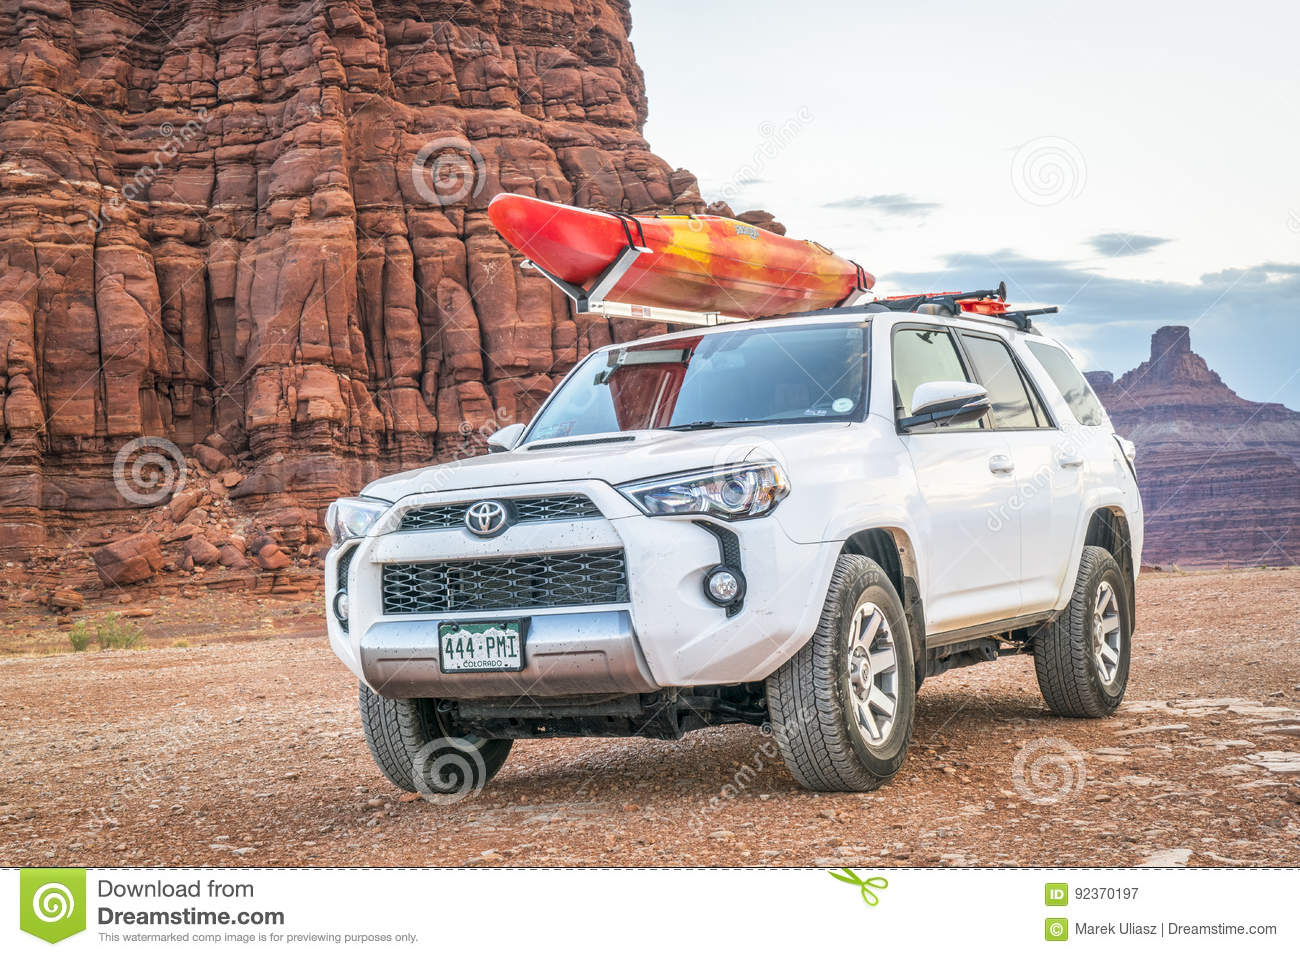 Toyota Suv With A Kayak On Roof On A Desert Trail